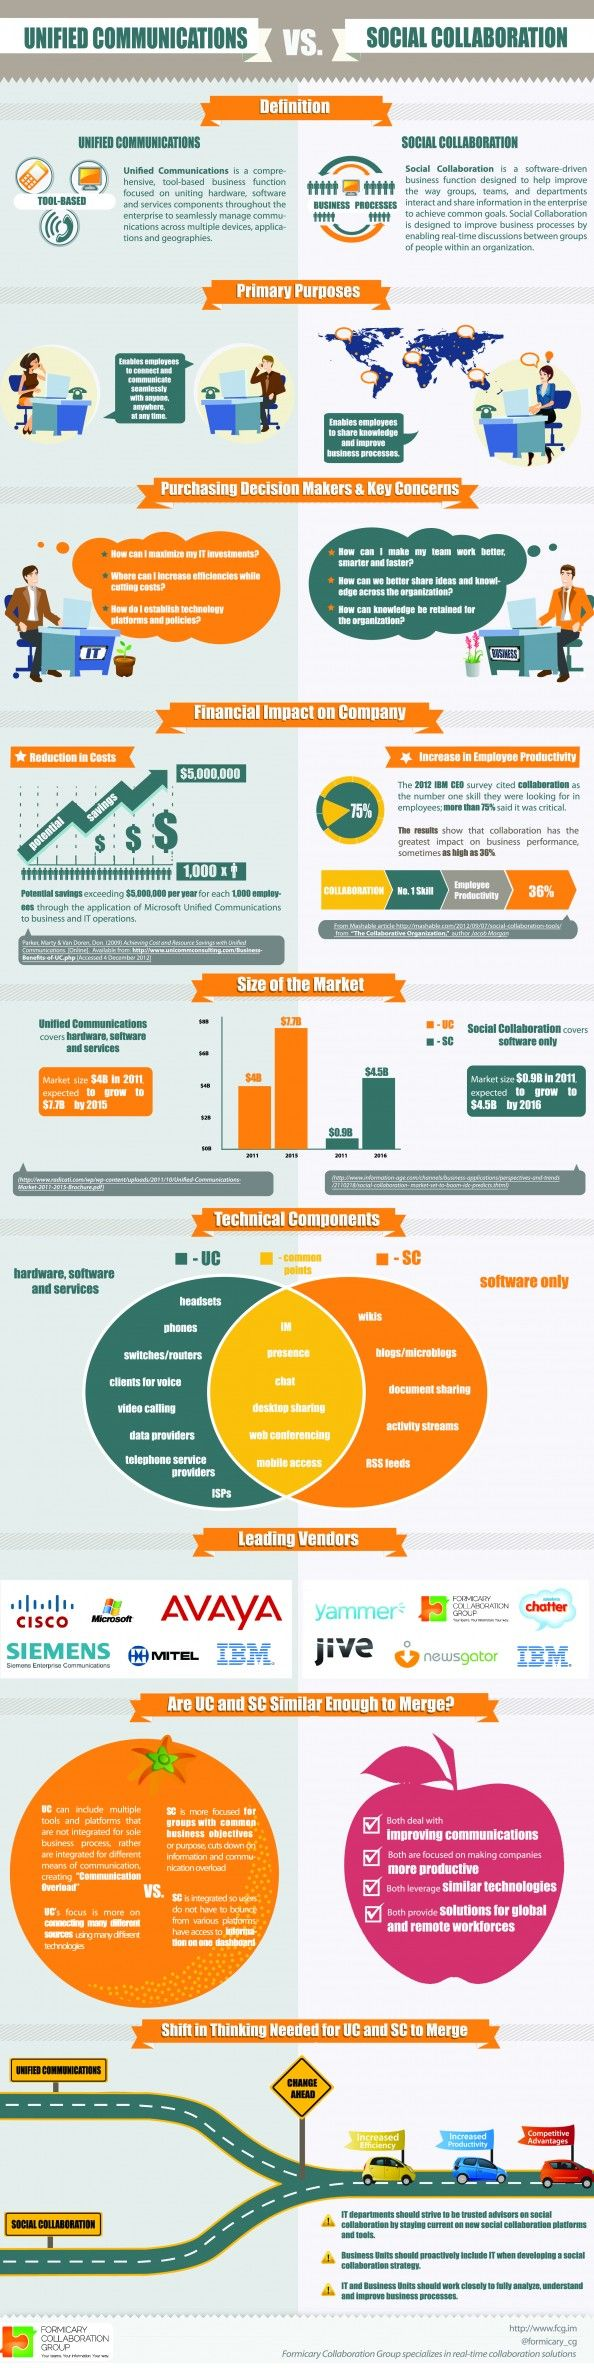 Unified Communications vs Social Collaboration #Infographic